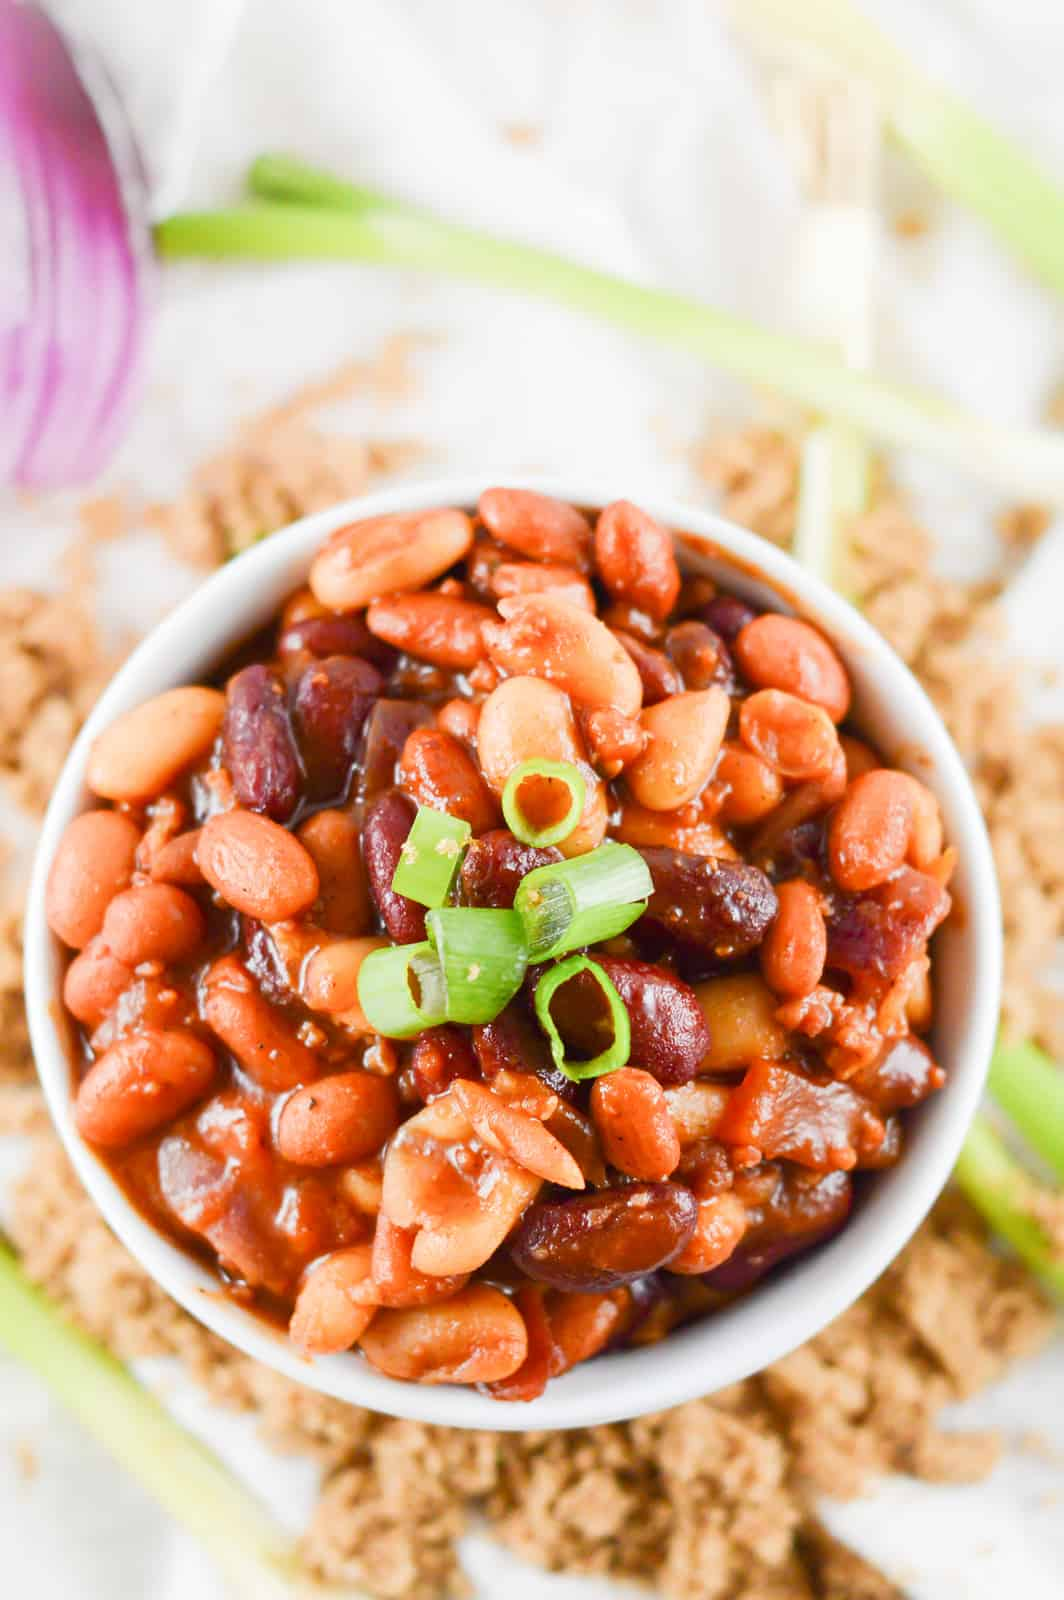 Overhead of homemade baked beans in bowl with brown sugar surrounding bowl